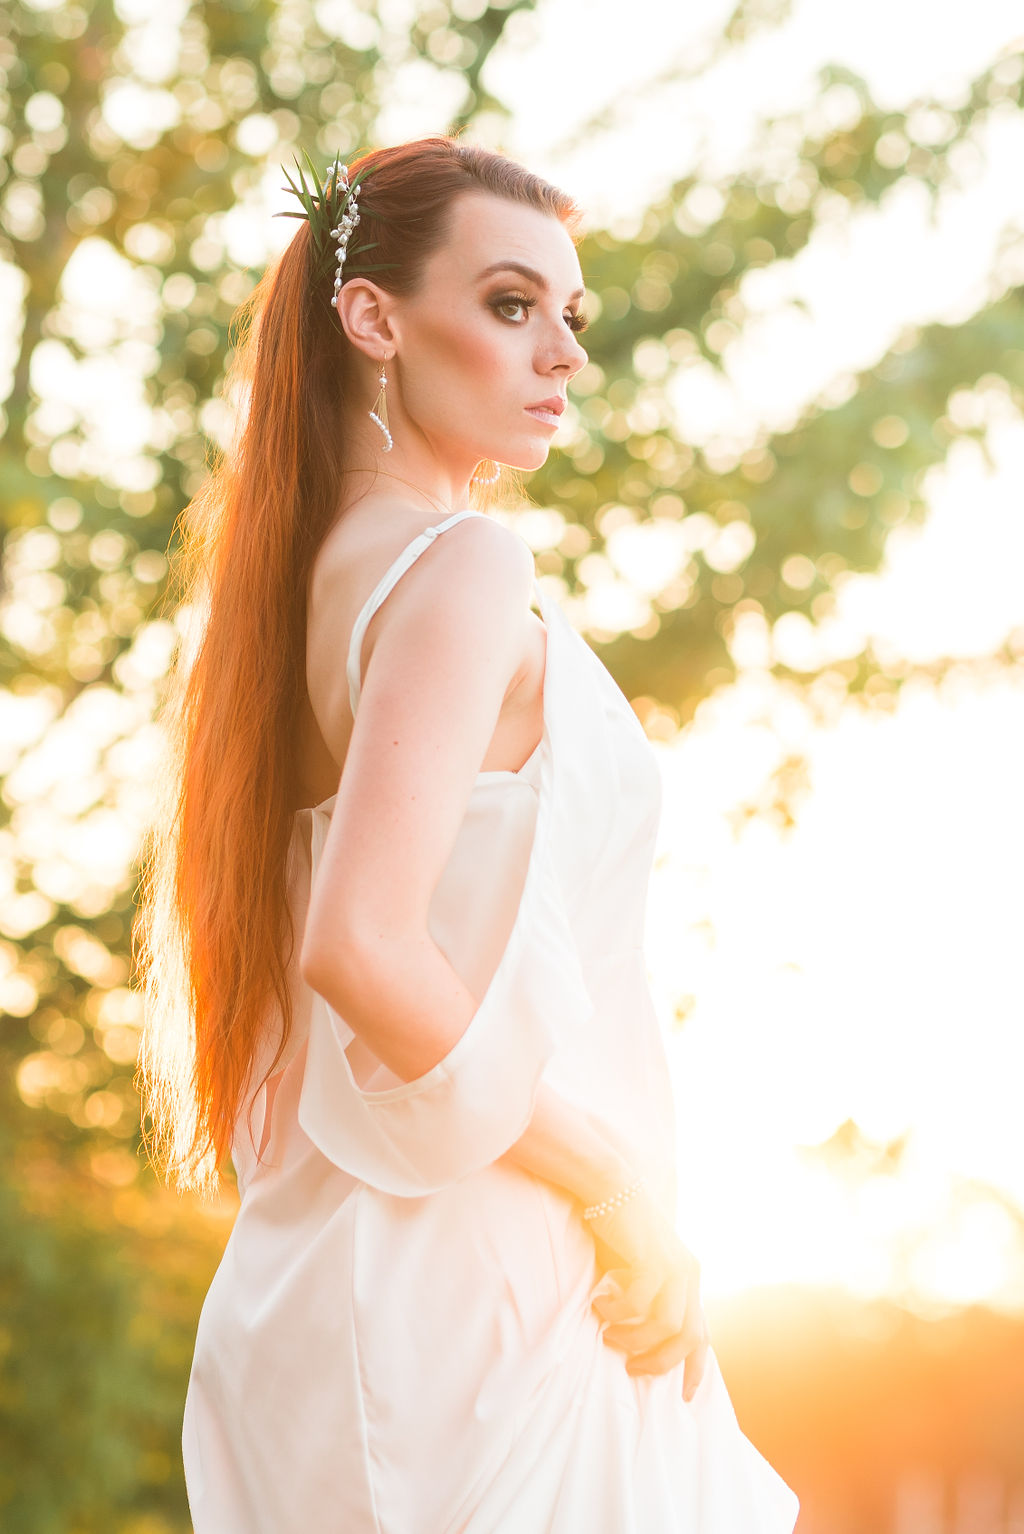 bohemian chic bride in flowy white gown against the sunset